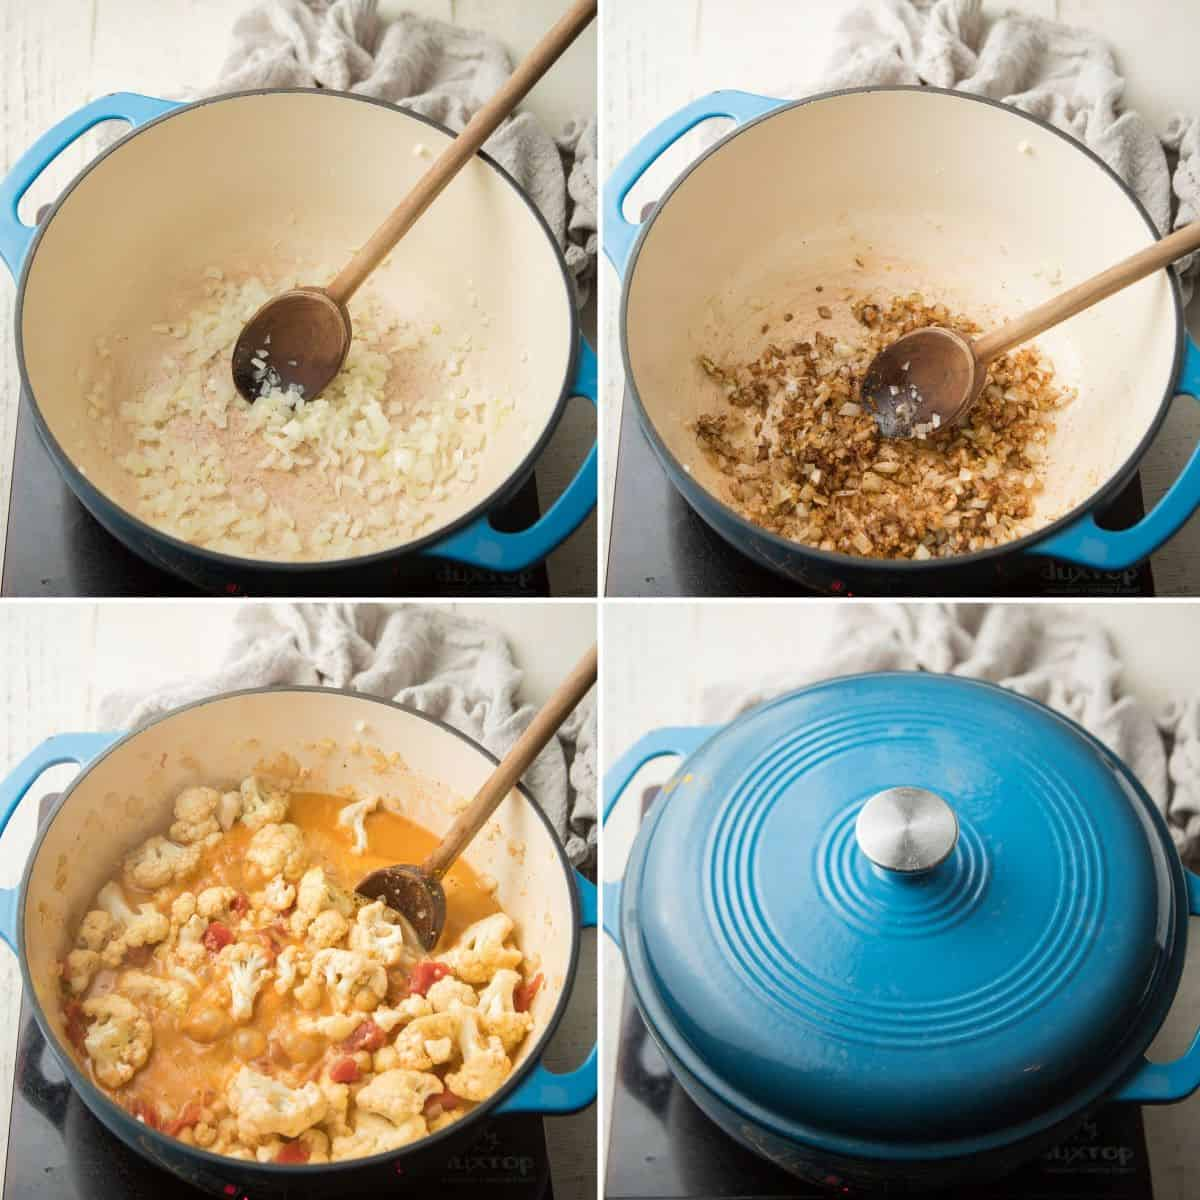 Collage Showing First 4 Steps for Making Cauliflower Curry: Sweat Onion, Add Spices, Add Coconut Milk, and Tomatoes, and Cover